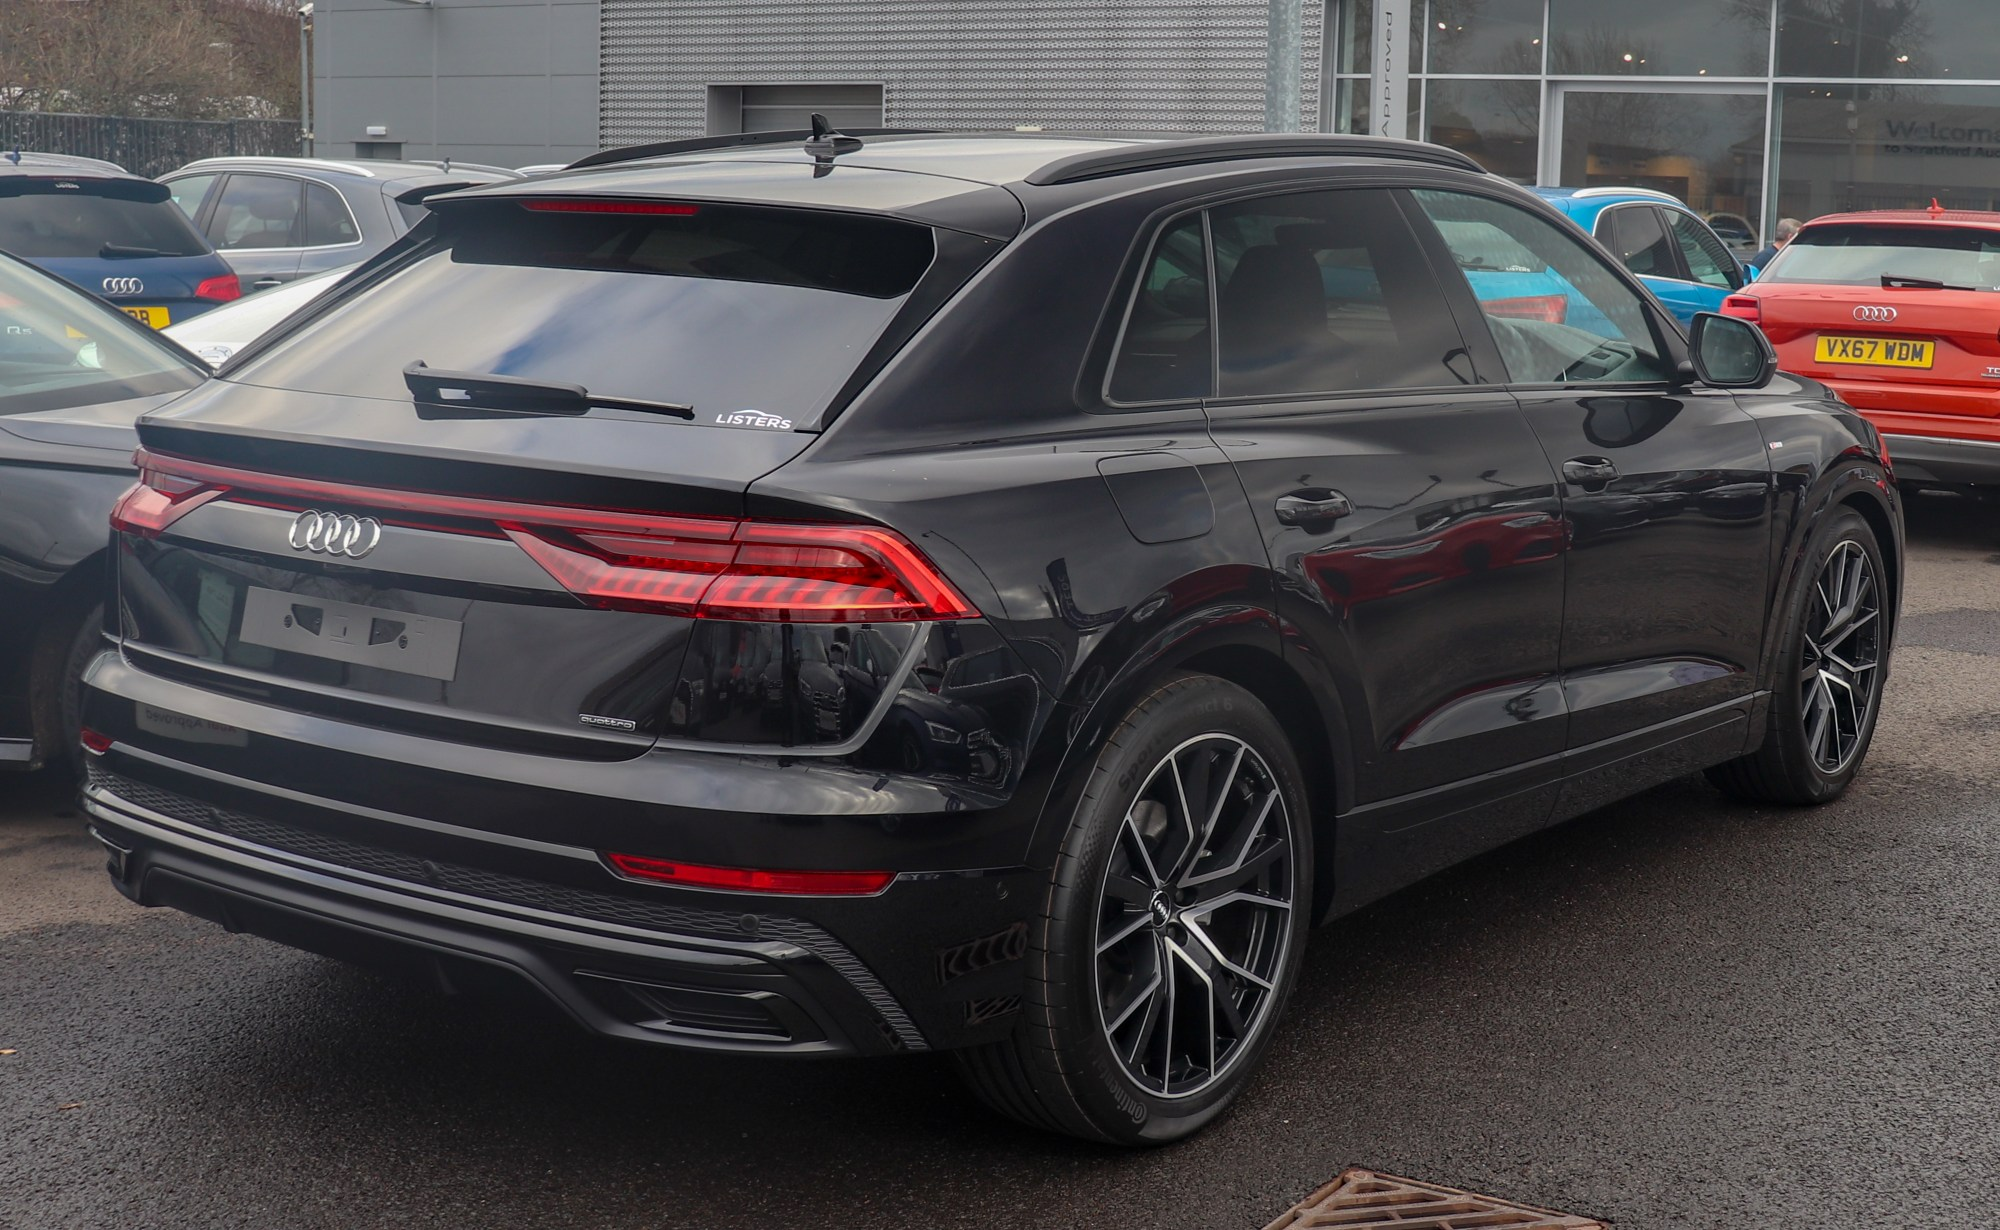 hight resolution of file 2019 audi q8 rear jpg